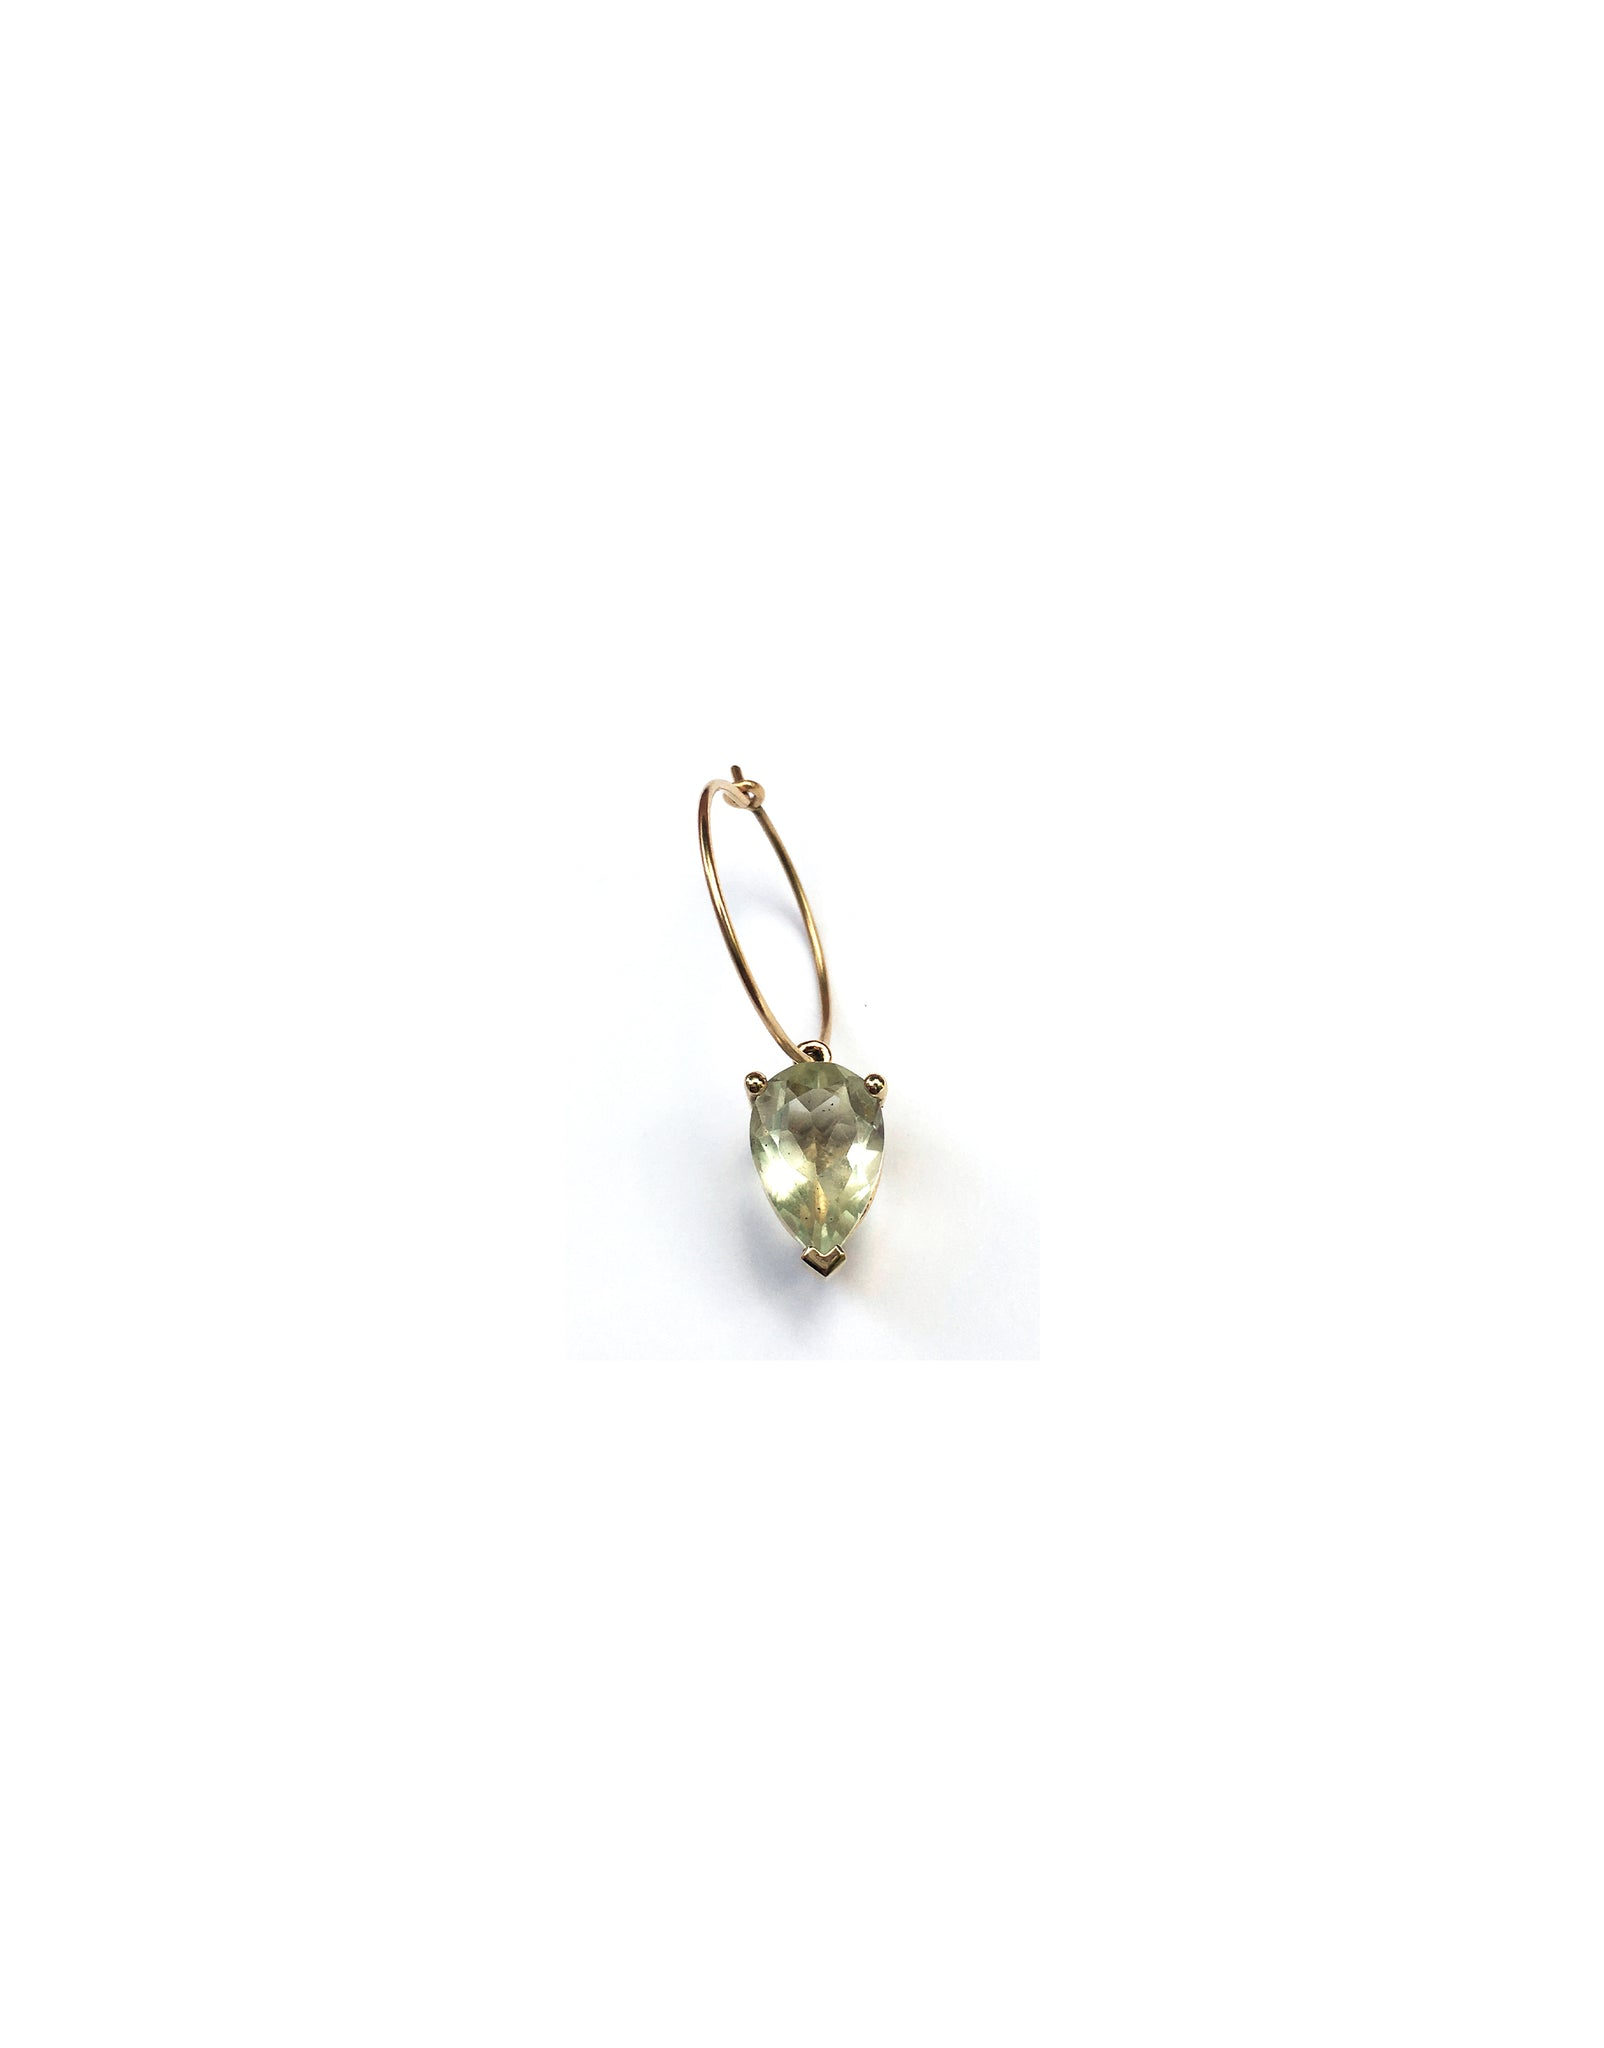 Earring 9K gold green amethyst - round bloom earring amethyst - Nayestones